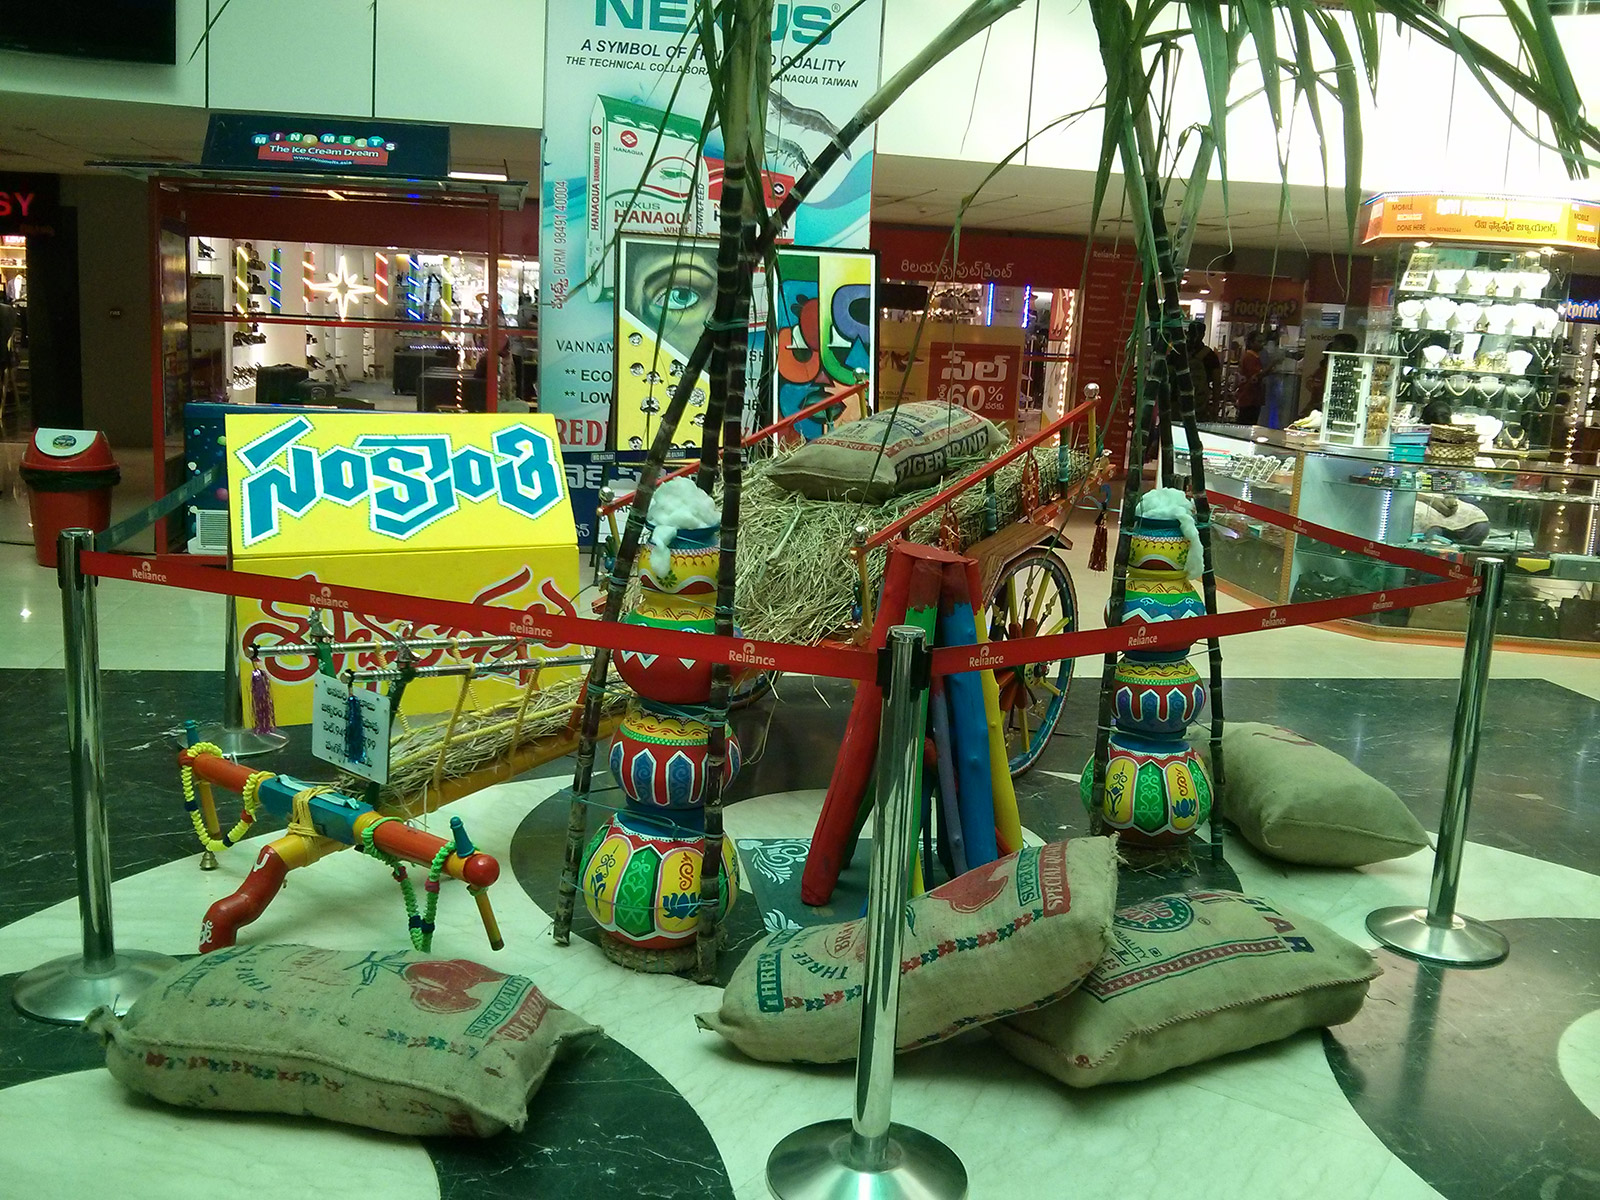 Sankranthi Event @ Coastal City Center, Bhimavaram - Events & Shopping in Bhimavaram